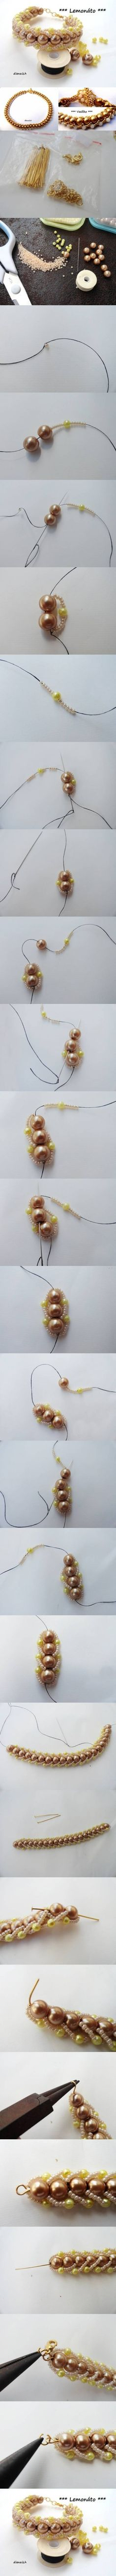 How to make Beads and pearls Bracelet step by step DIY tutorial instructions